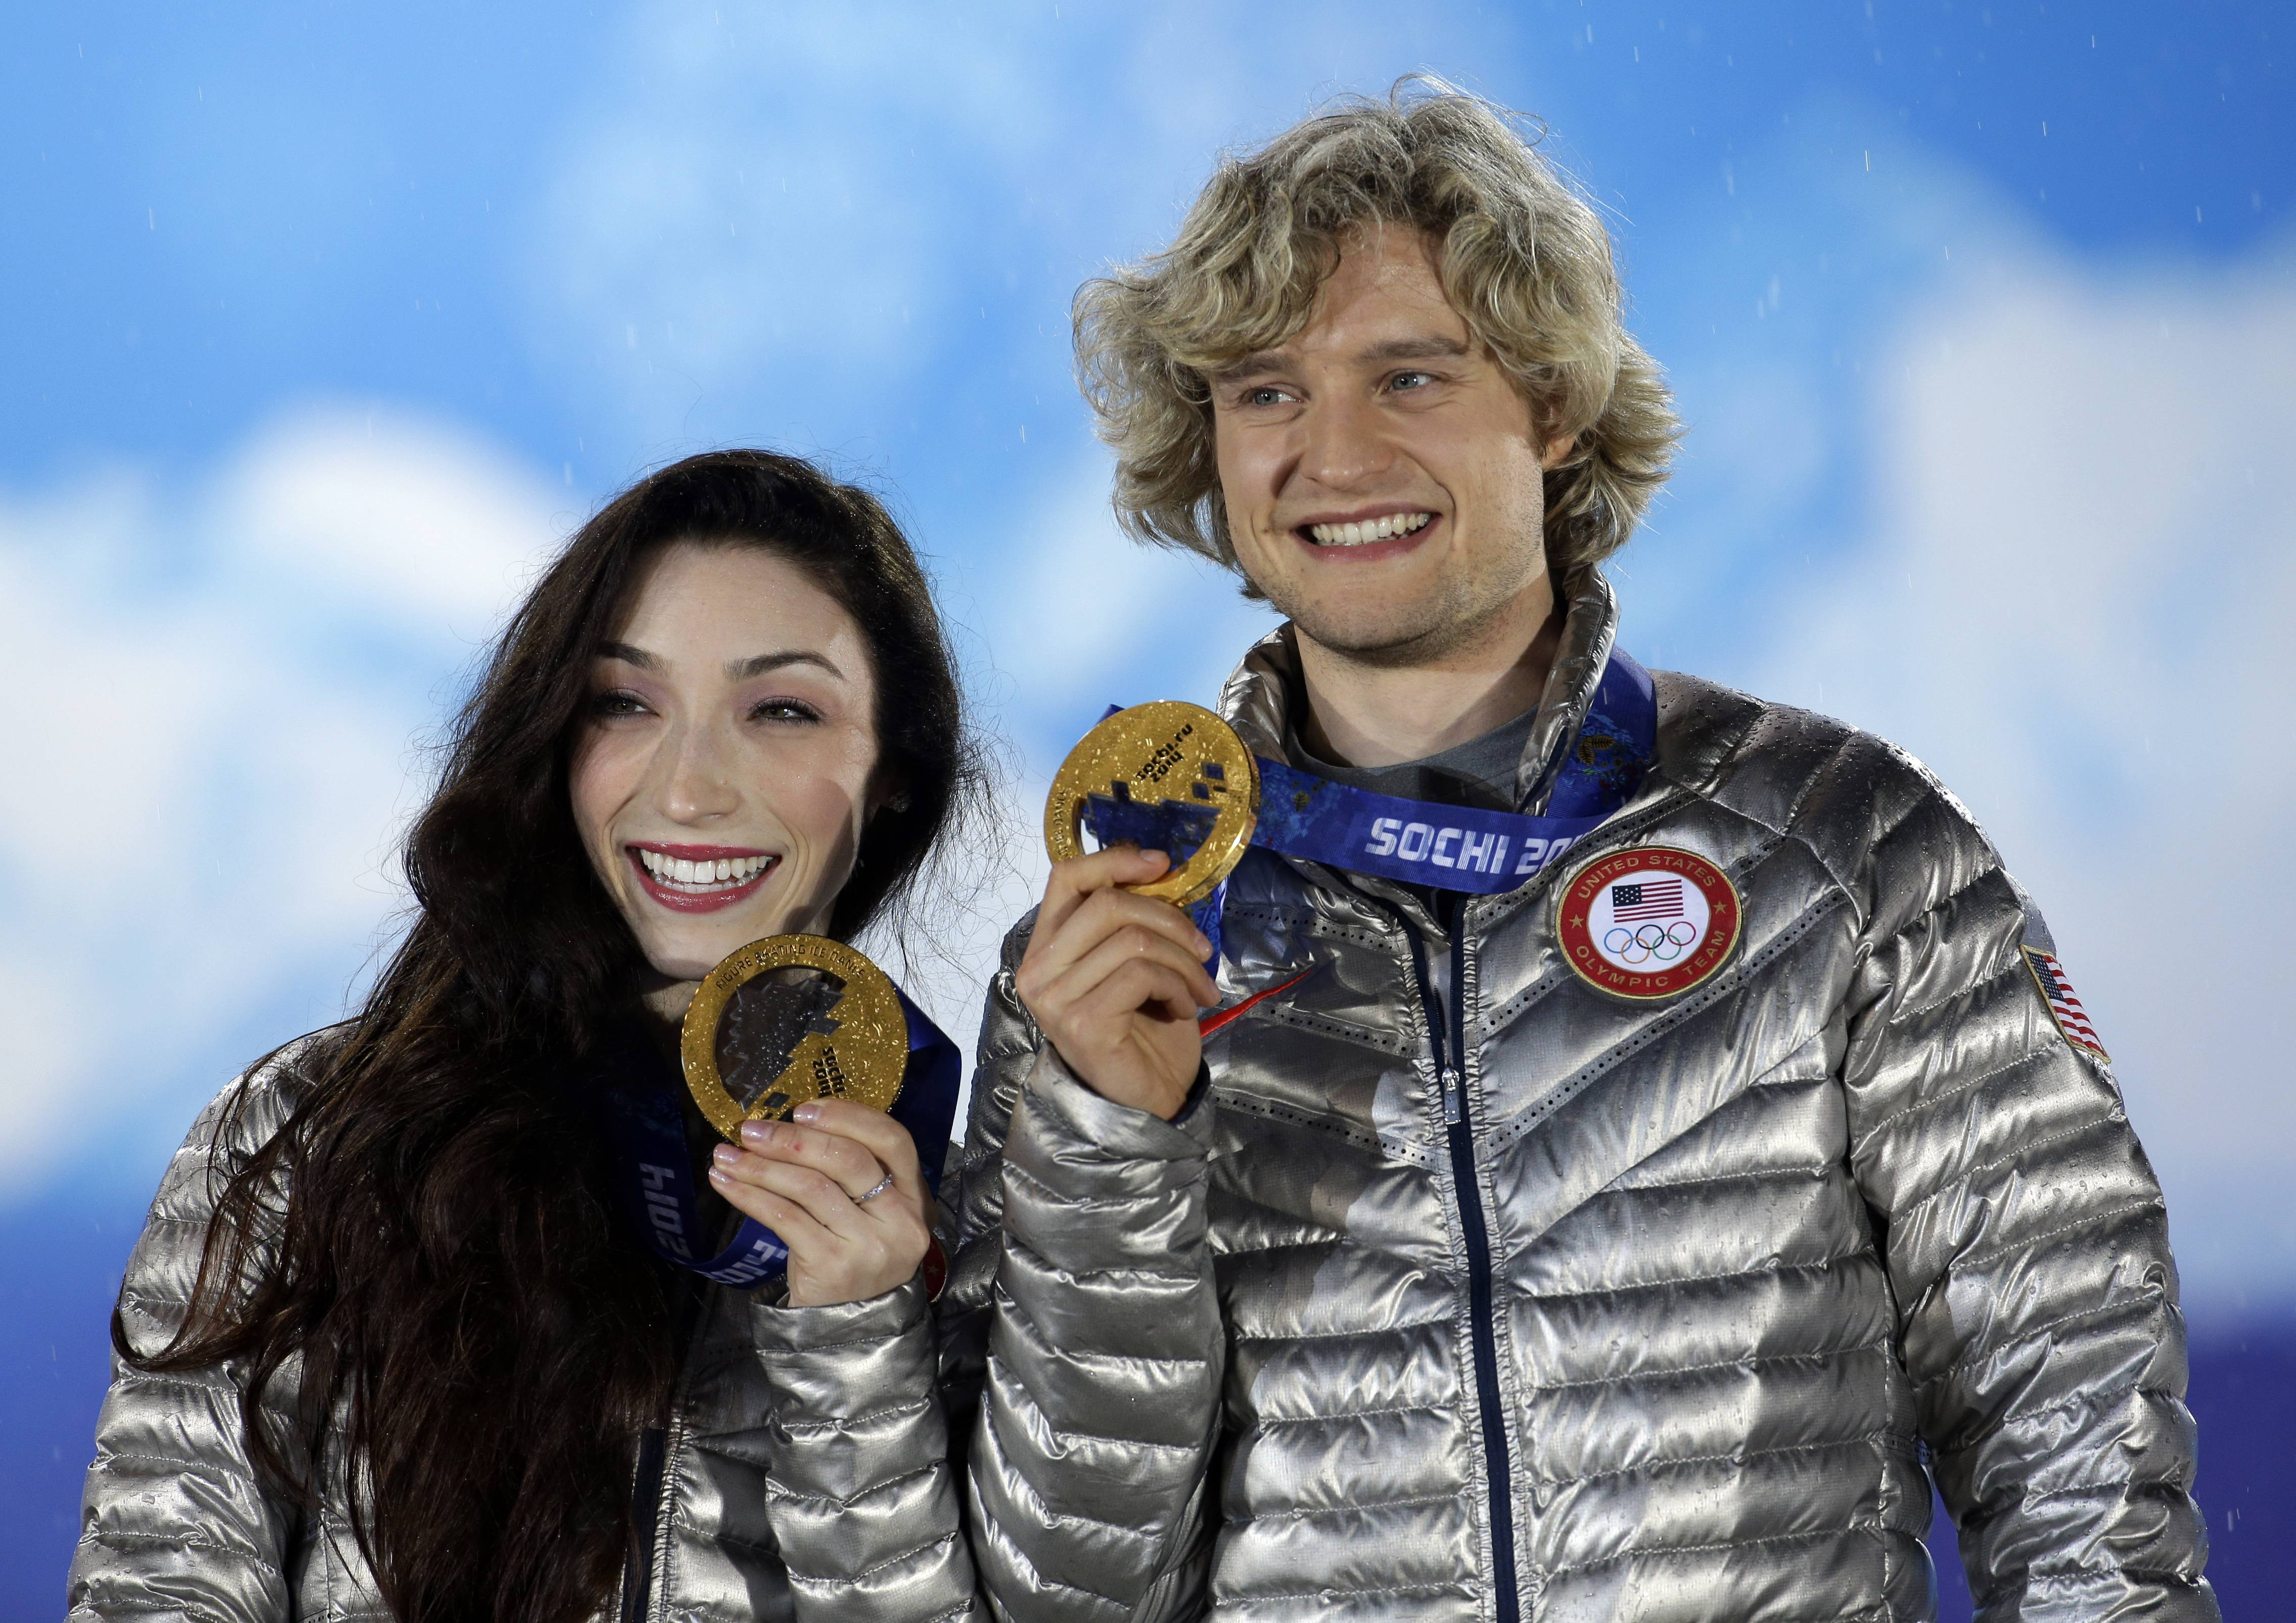 Ice dance figure skating gold medalists Meryl Davis and Charlie White of the United States pose with their medals.